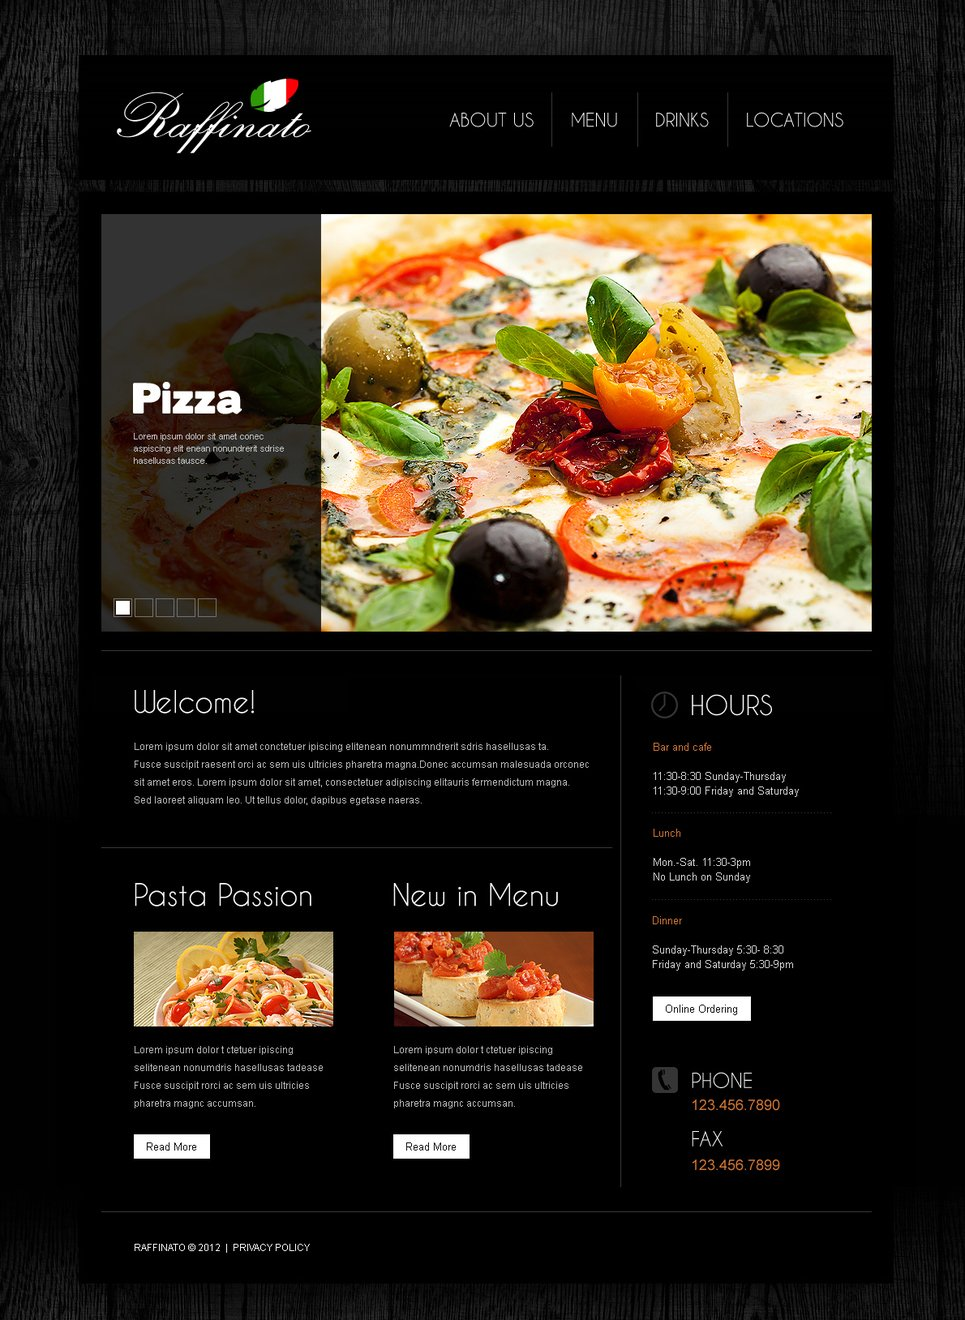 Black Wood Textured Web Template for Restaurant Businesses - image